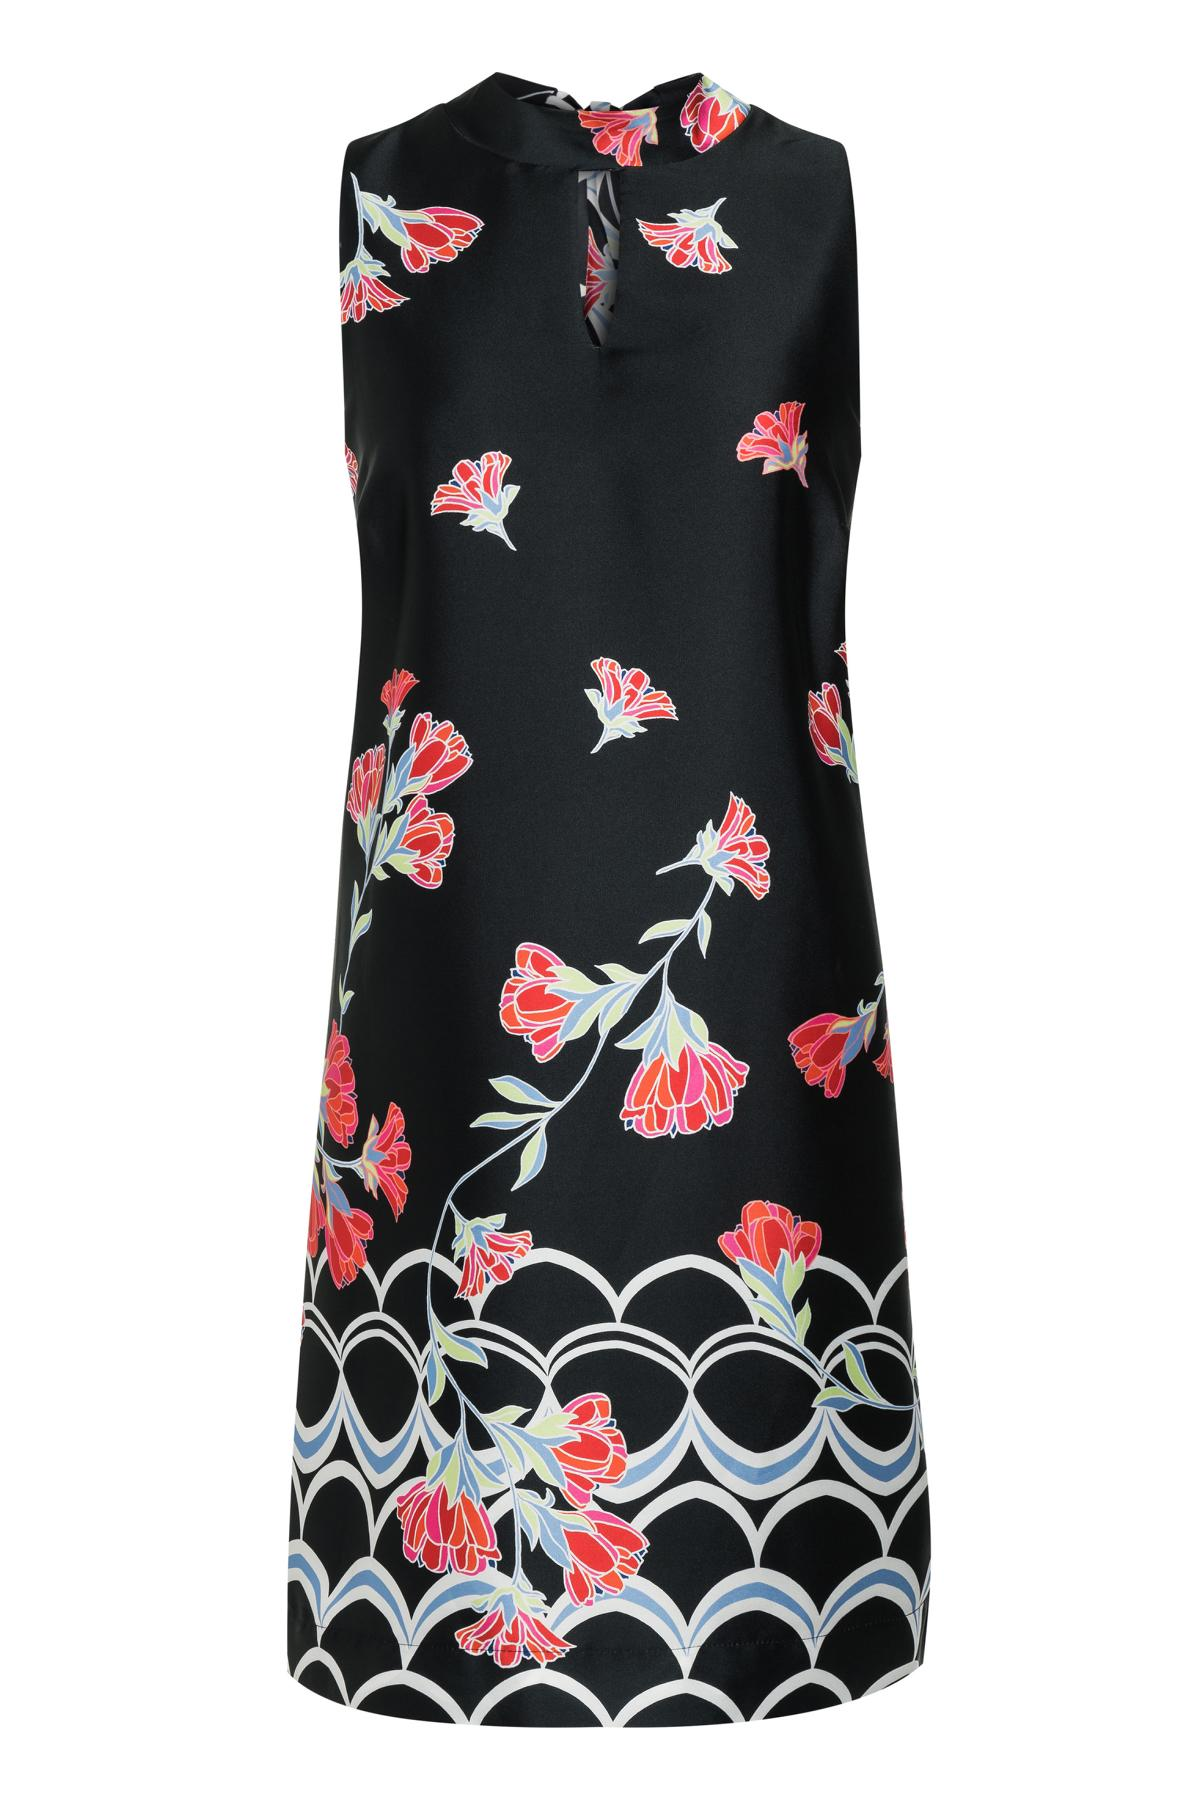 Ana Alcazar A-Shaped Dress Sefata Black